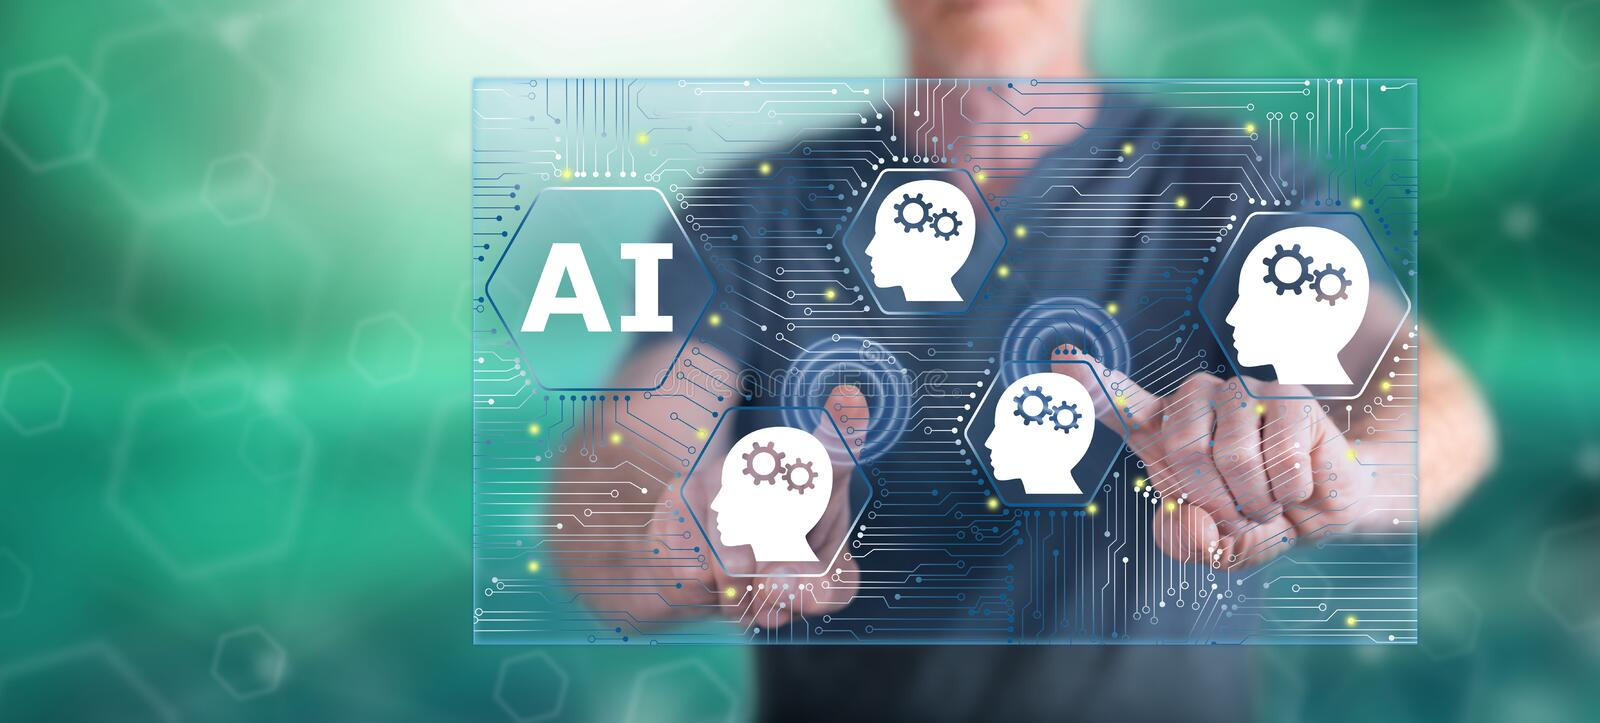 Man touching an artificial intelligence concept stock images